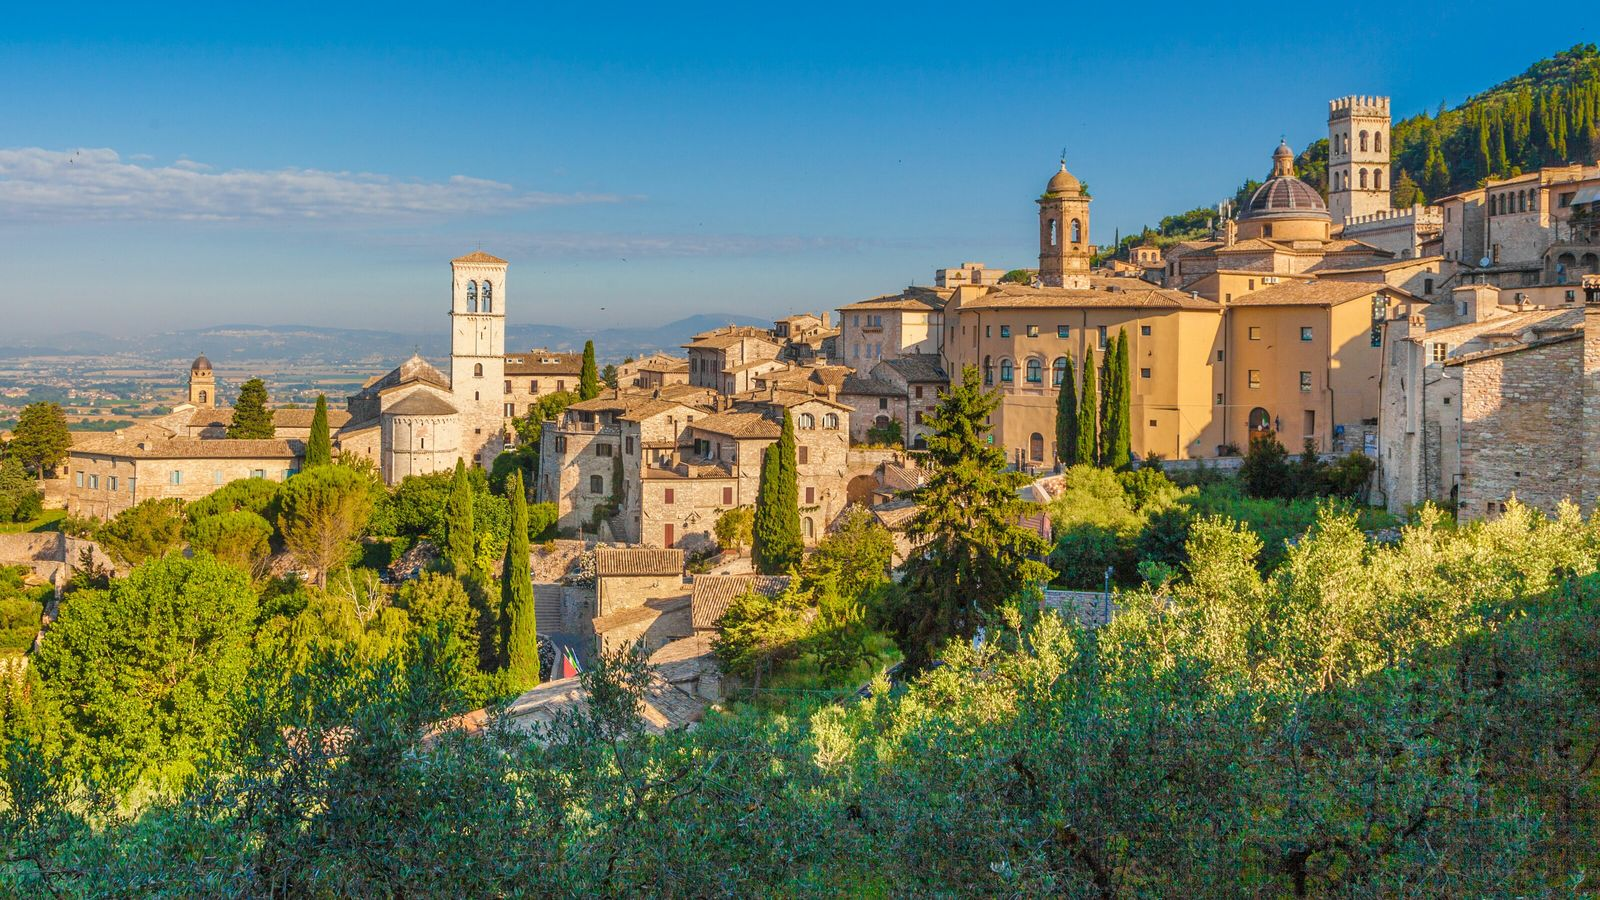 As well attracting legions of Christian pilgrims, Assisi in Italy has become a popular meeting place ...